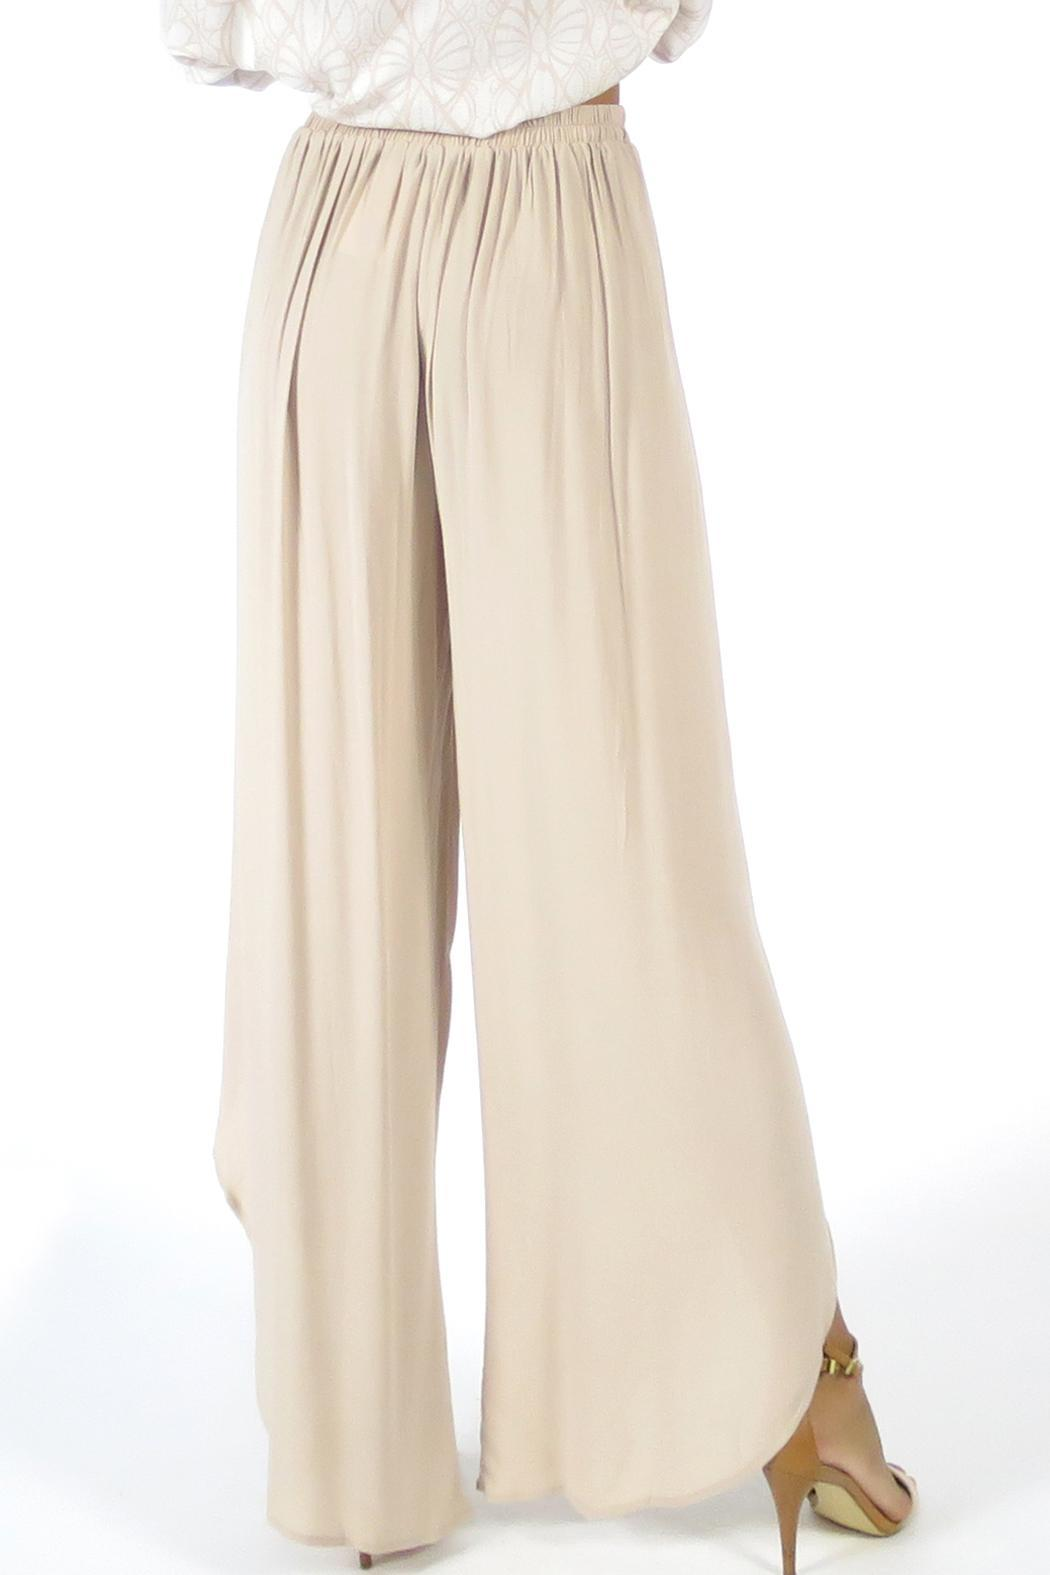 Olivaceous Tulip Pants From Hawaii By The Butik Shoptiques